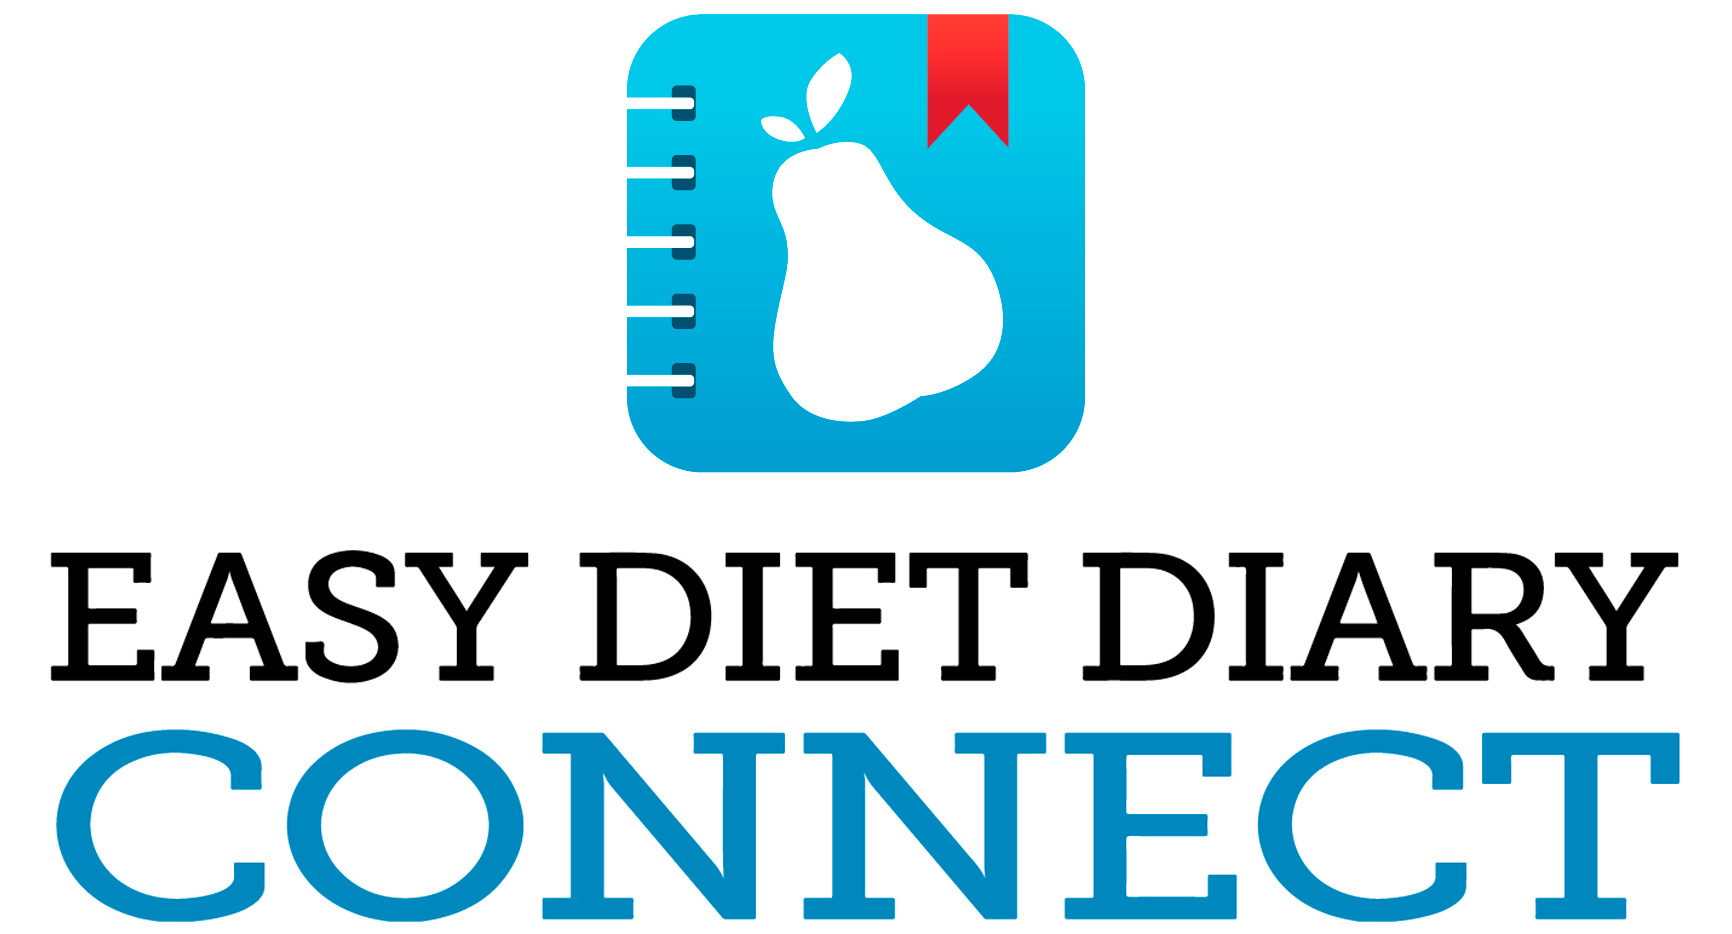 Easy Diet Diary Connect